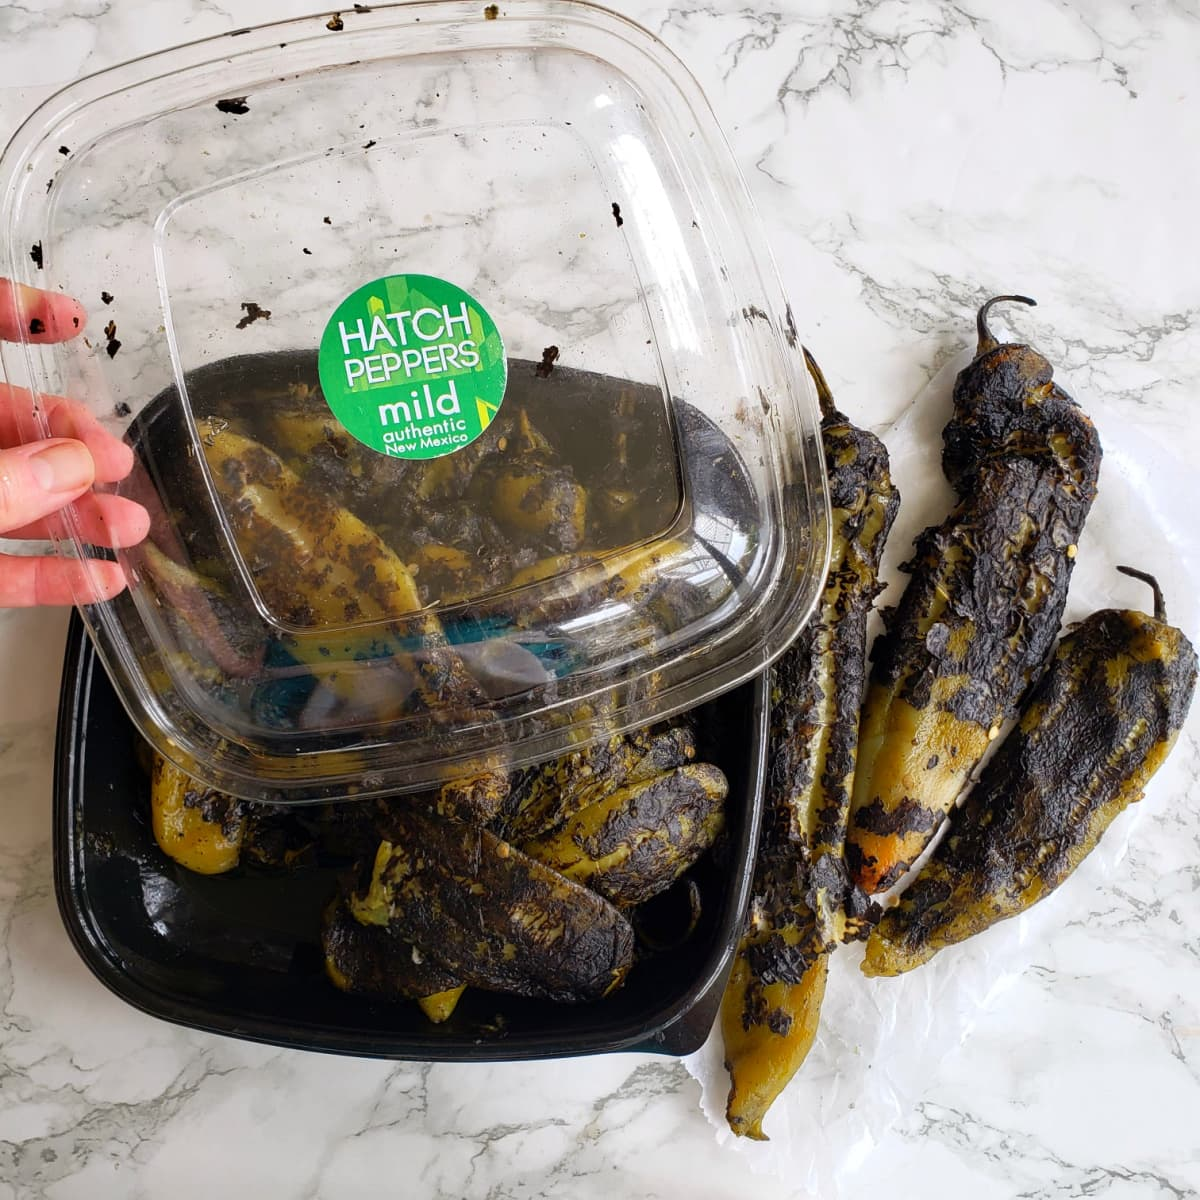 Roasted Hatch chile peppers in a black clamshell package on a white marble counter on ShockinglyDelicious.com